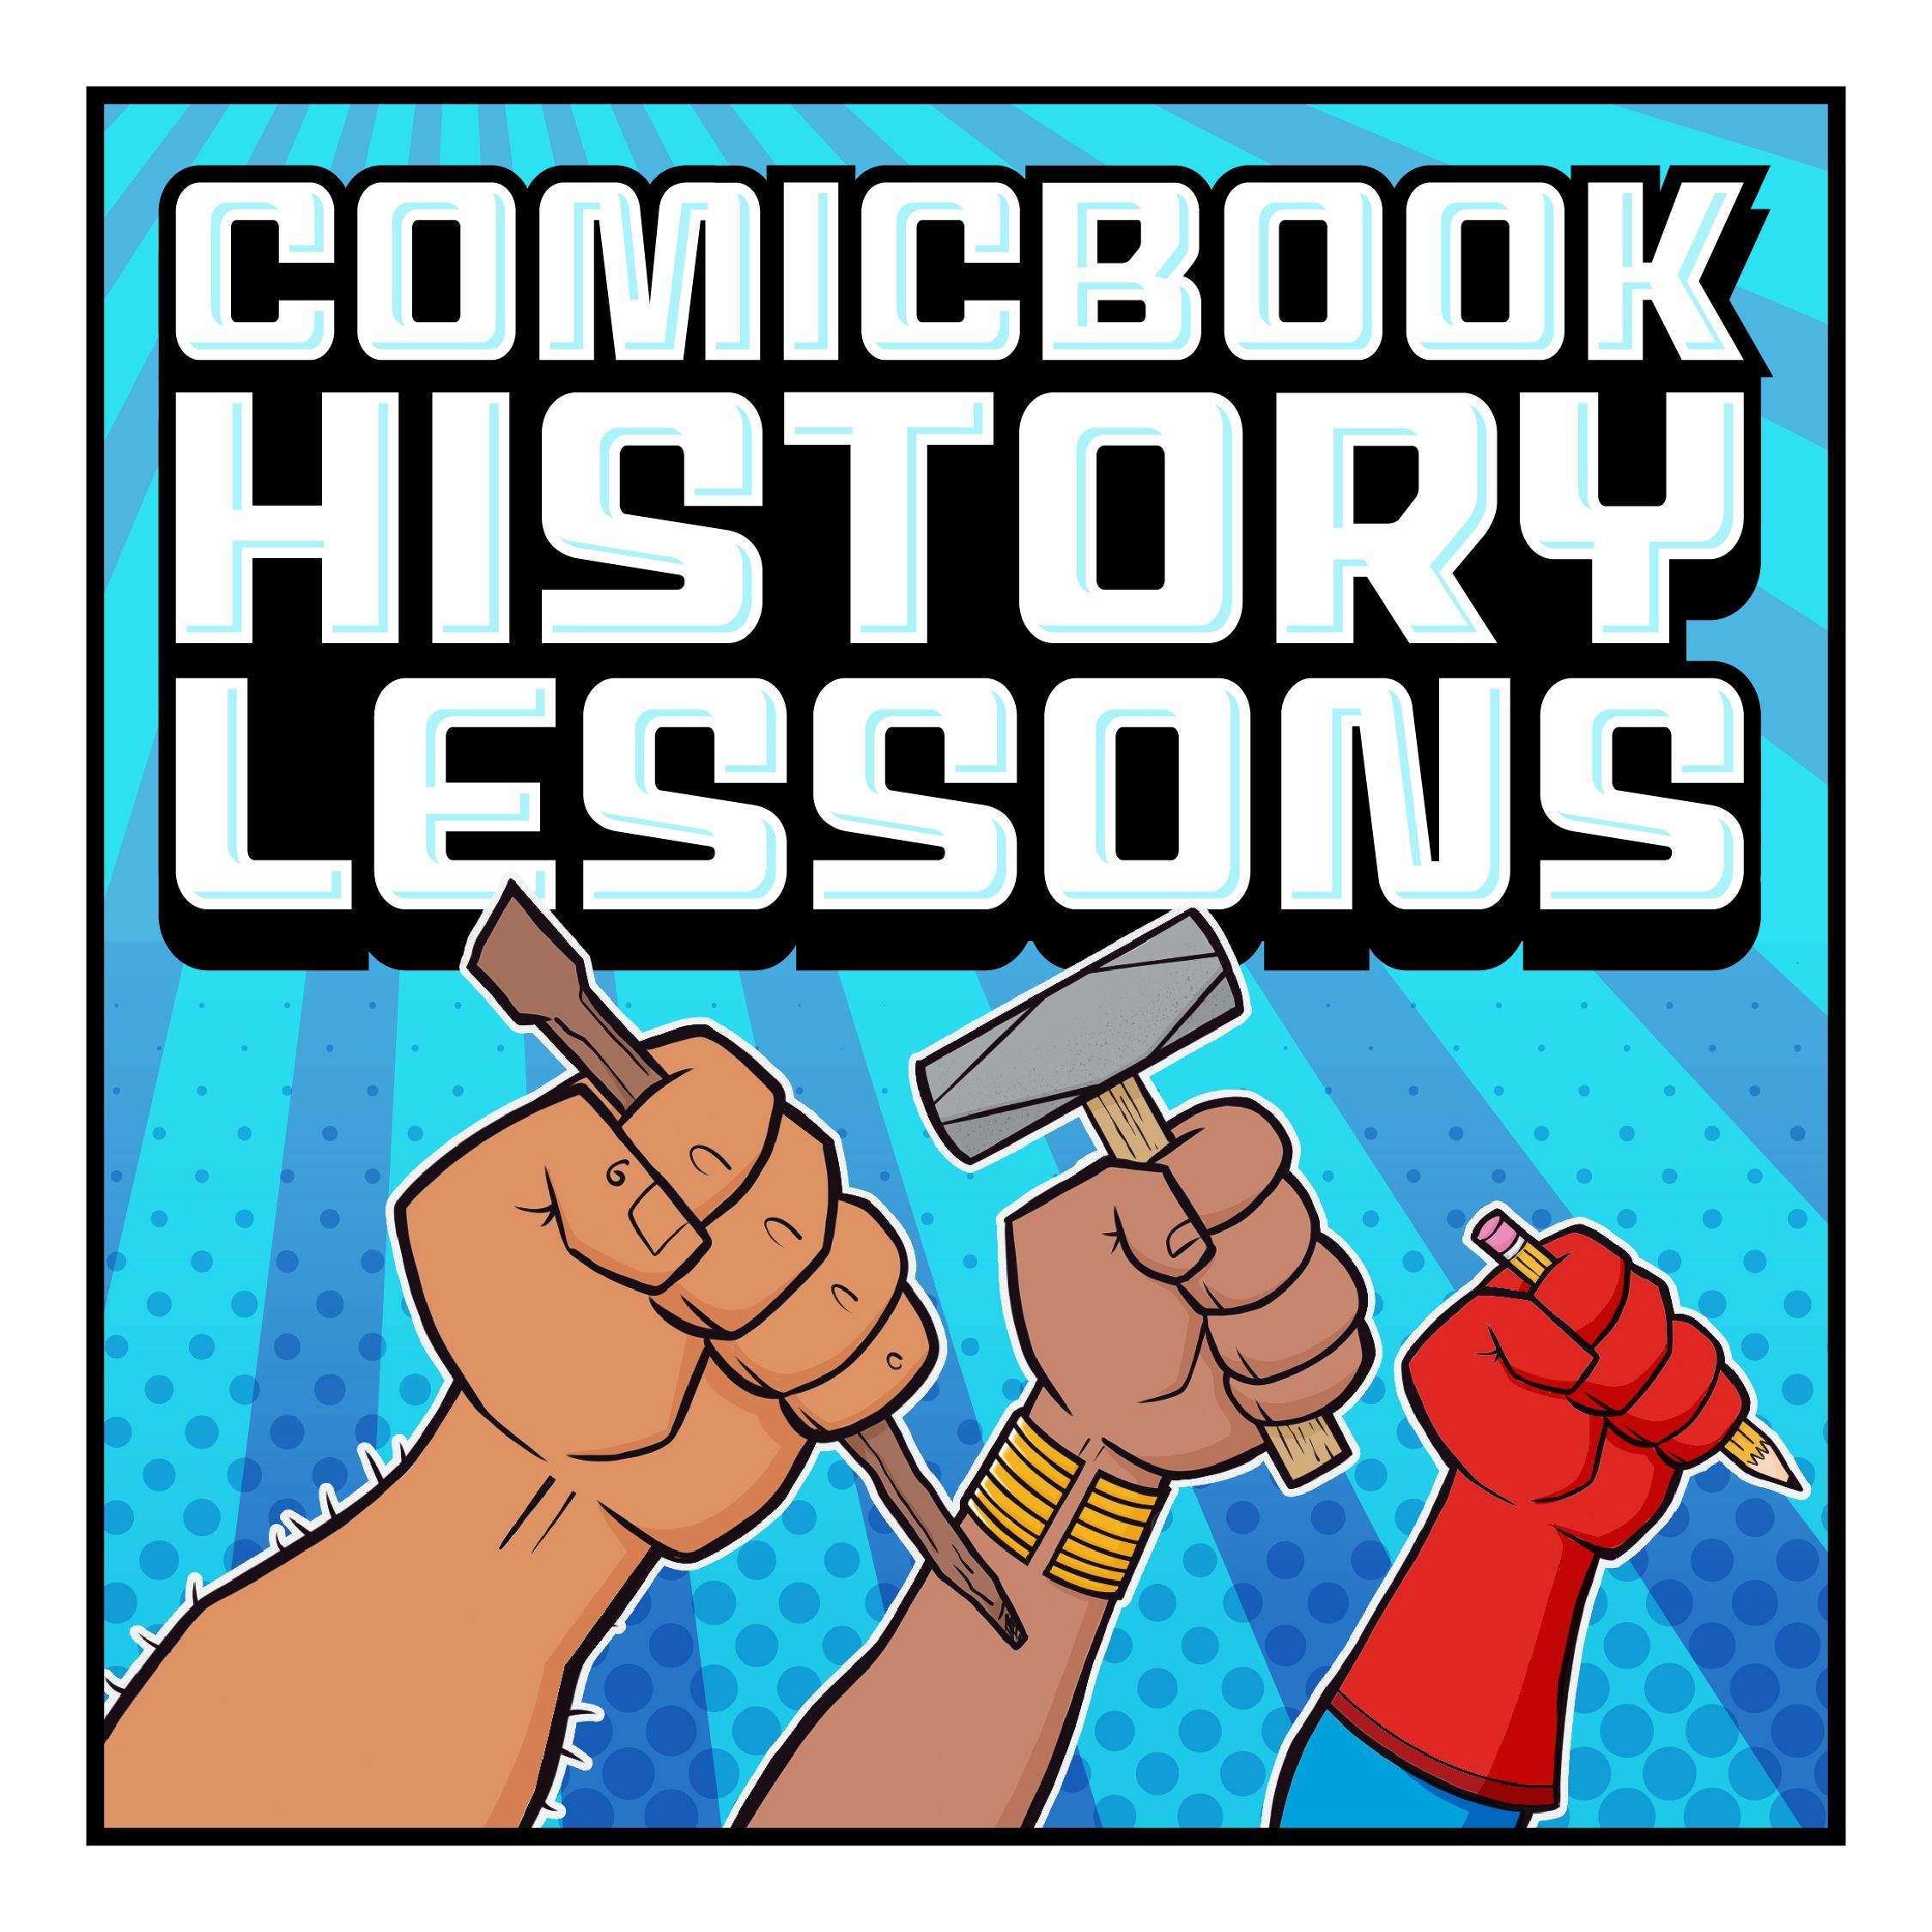 Comicbook History Lessons